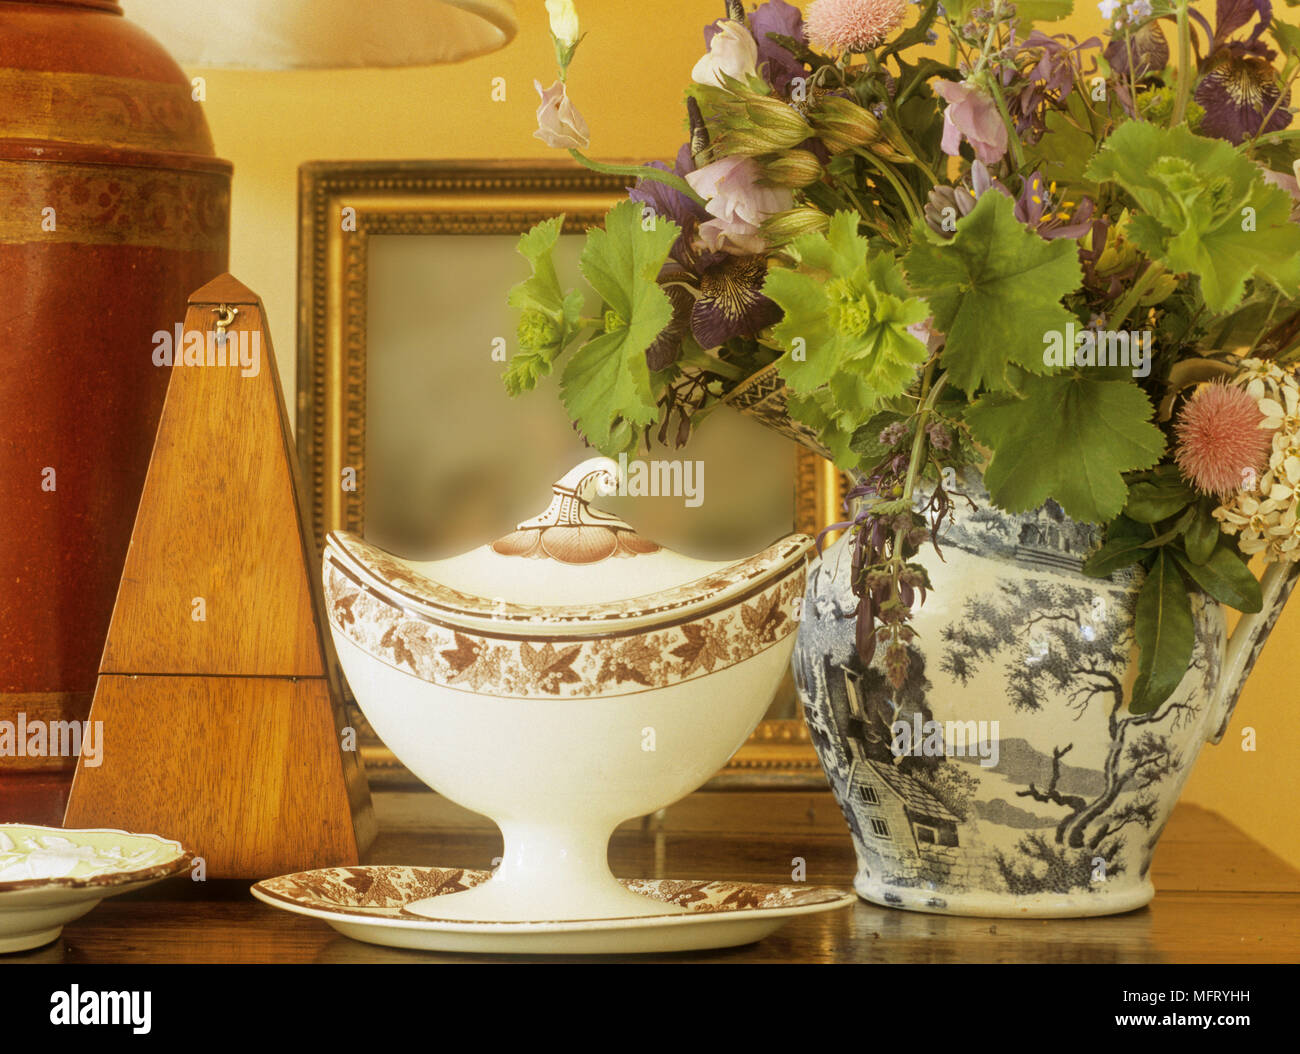 Detail of objects on wooden table including china jug with flowers and metronome. - Stock Image